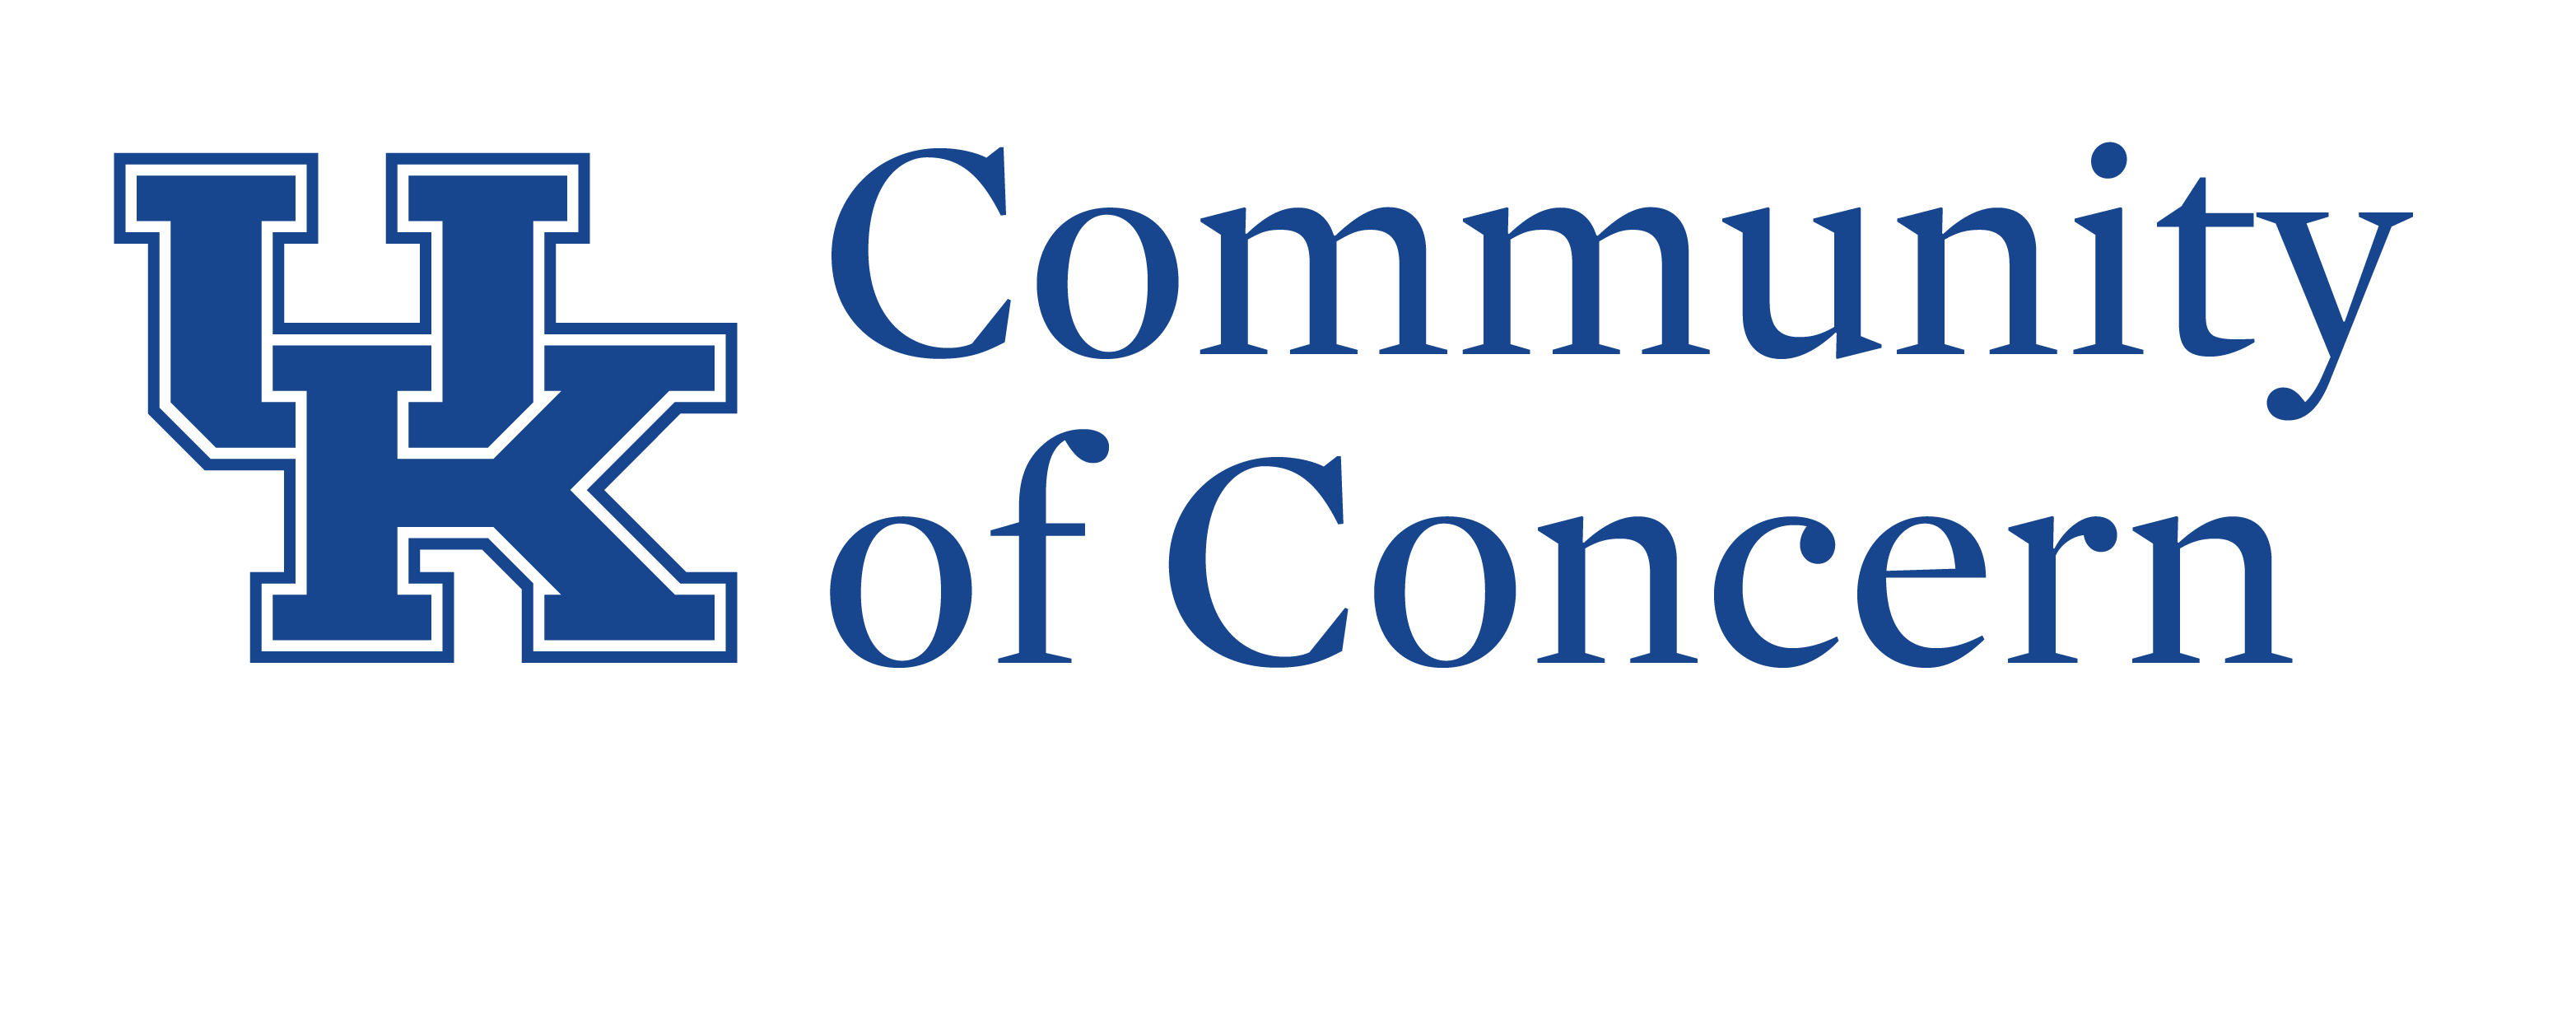 Community of Concern